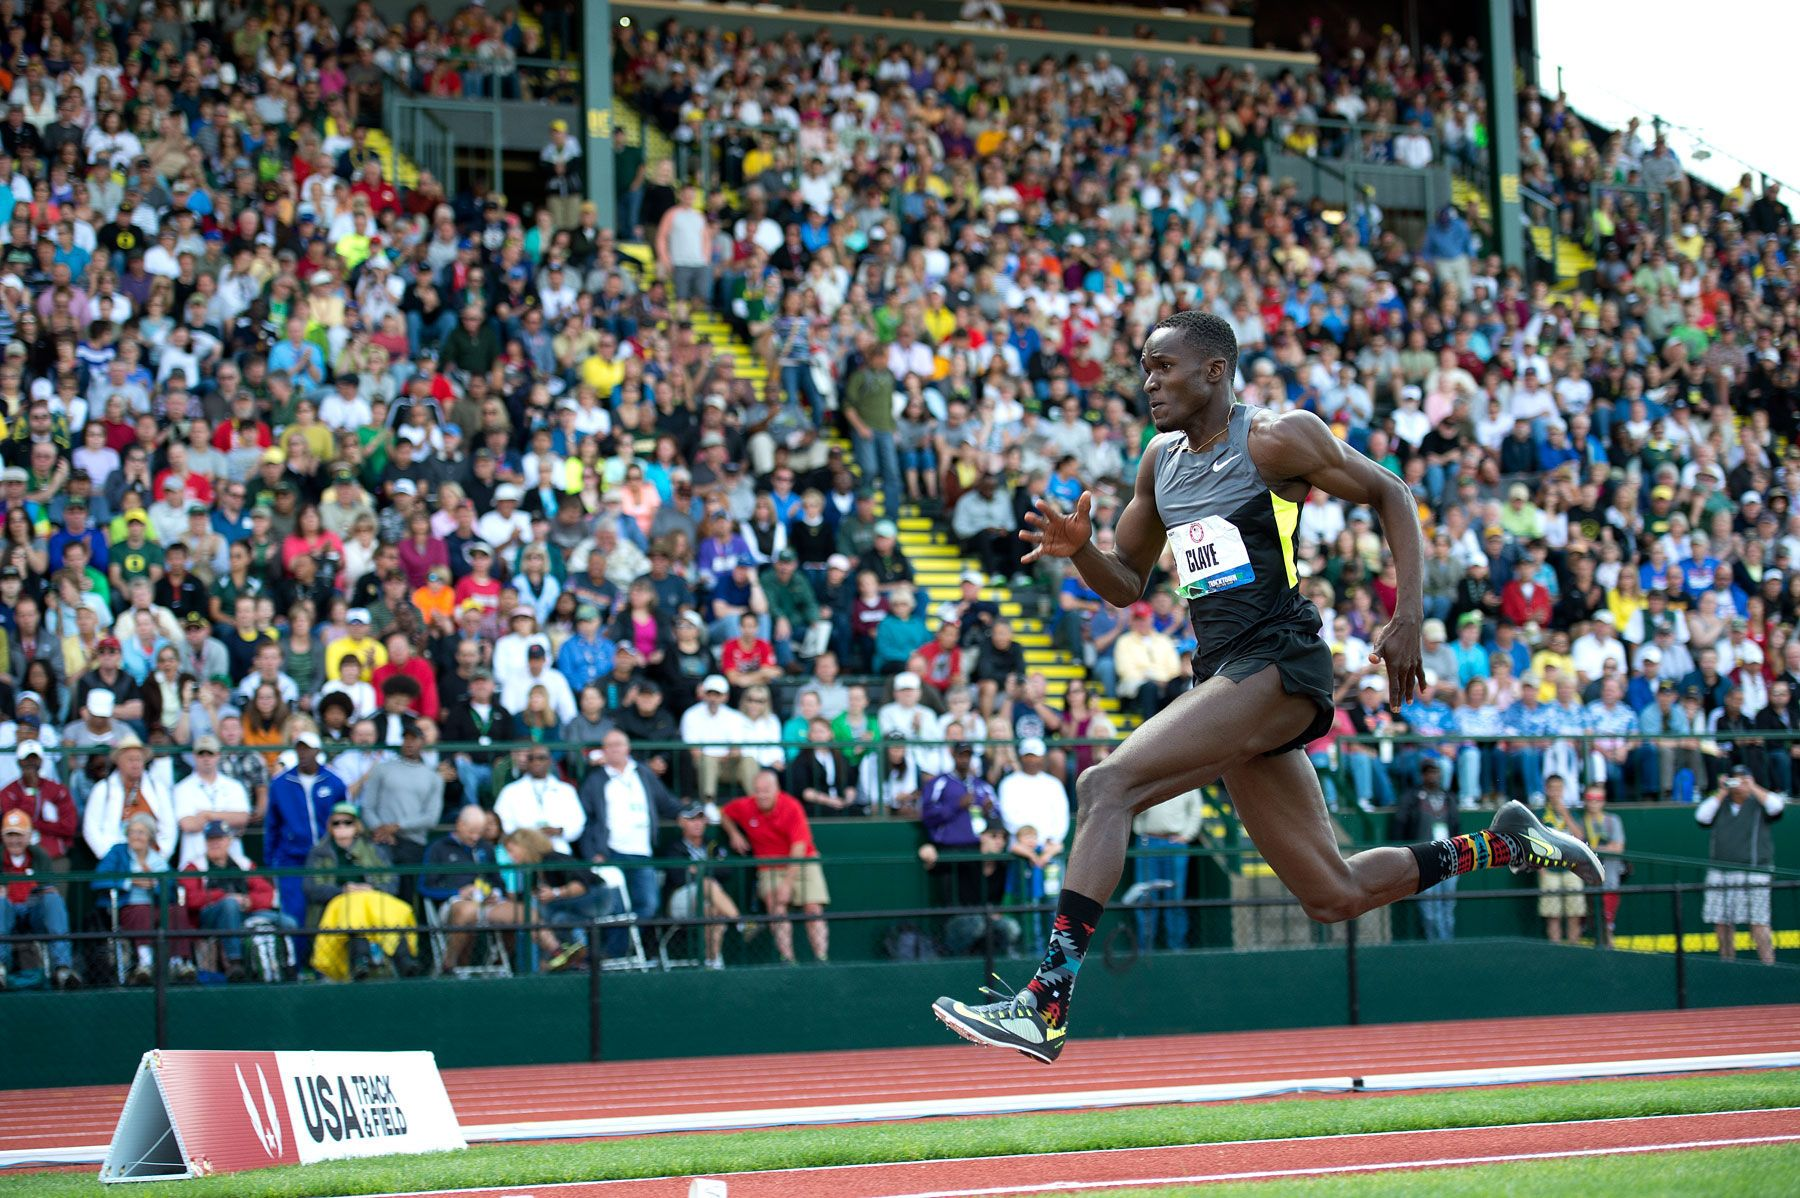 1ustrials_2012_will_claye_lj_track_and_field_image_jeff_cohen_photo_lb.jpg